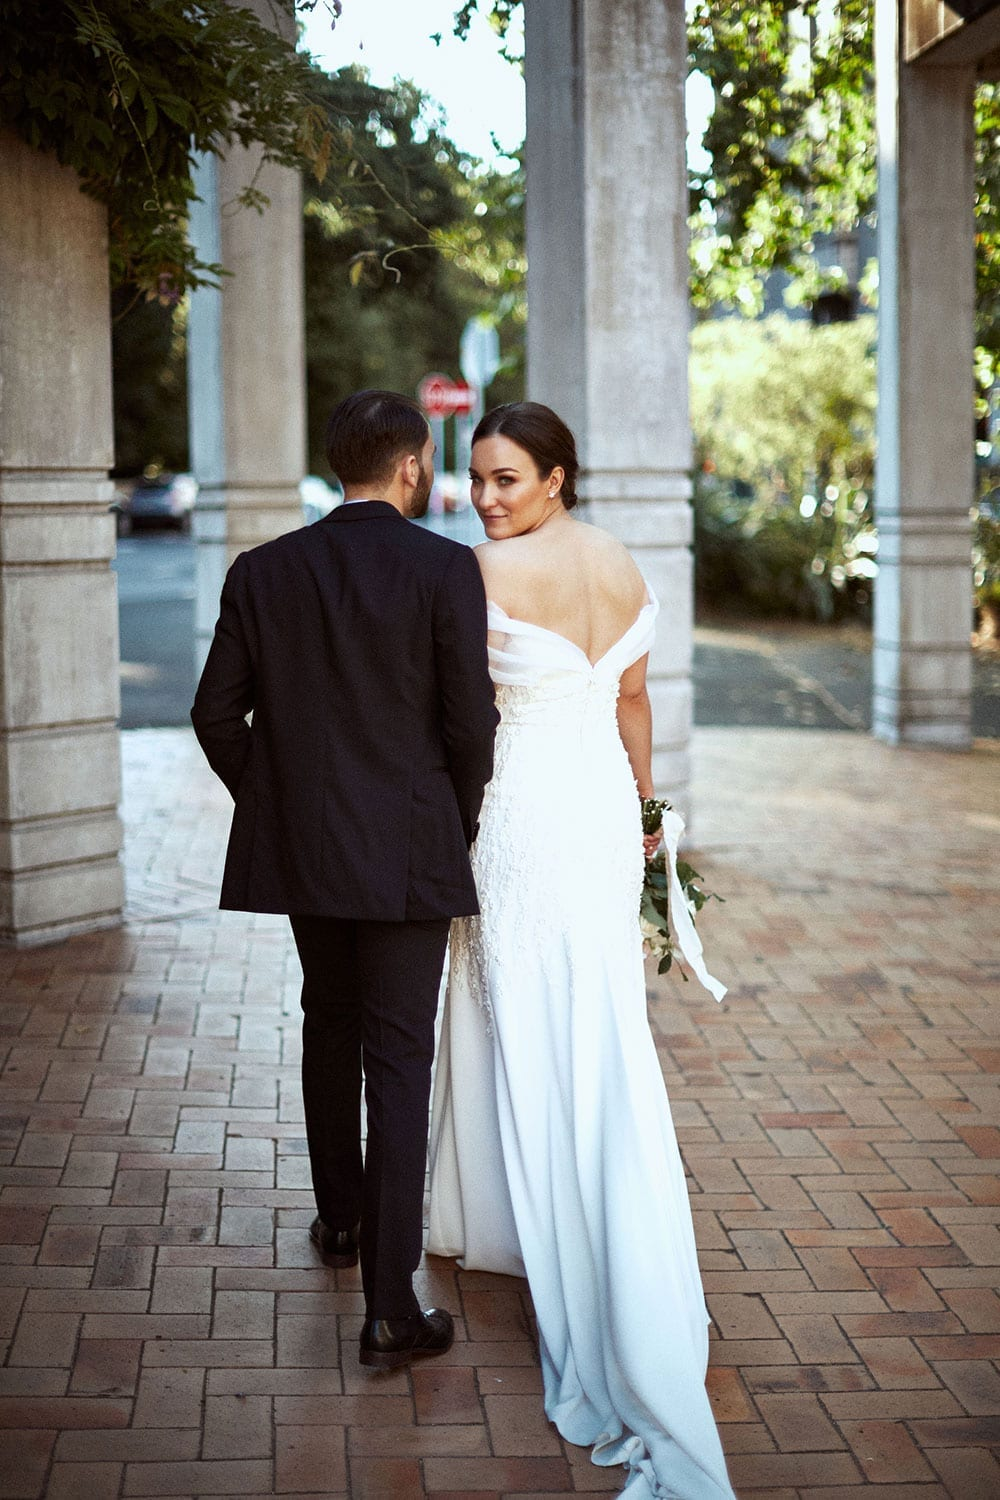 Vinka Design Features Real Weddings - bride in custom made gown with stunning silhouette. Bride and groom walking, bride looking over shoulder with low back dress detail